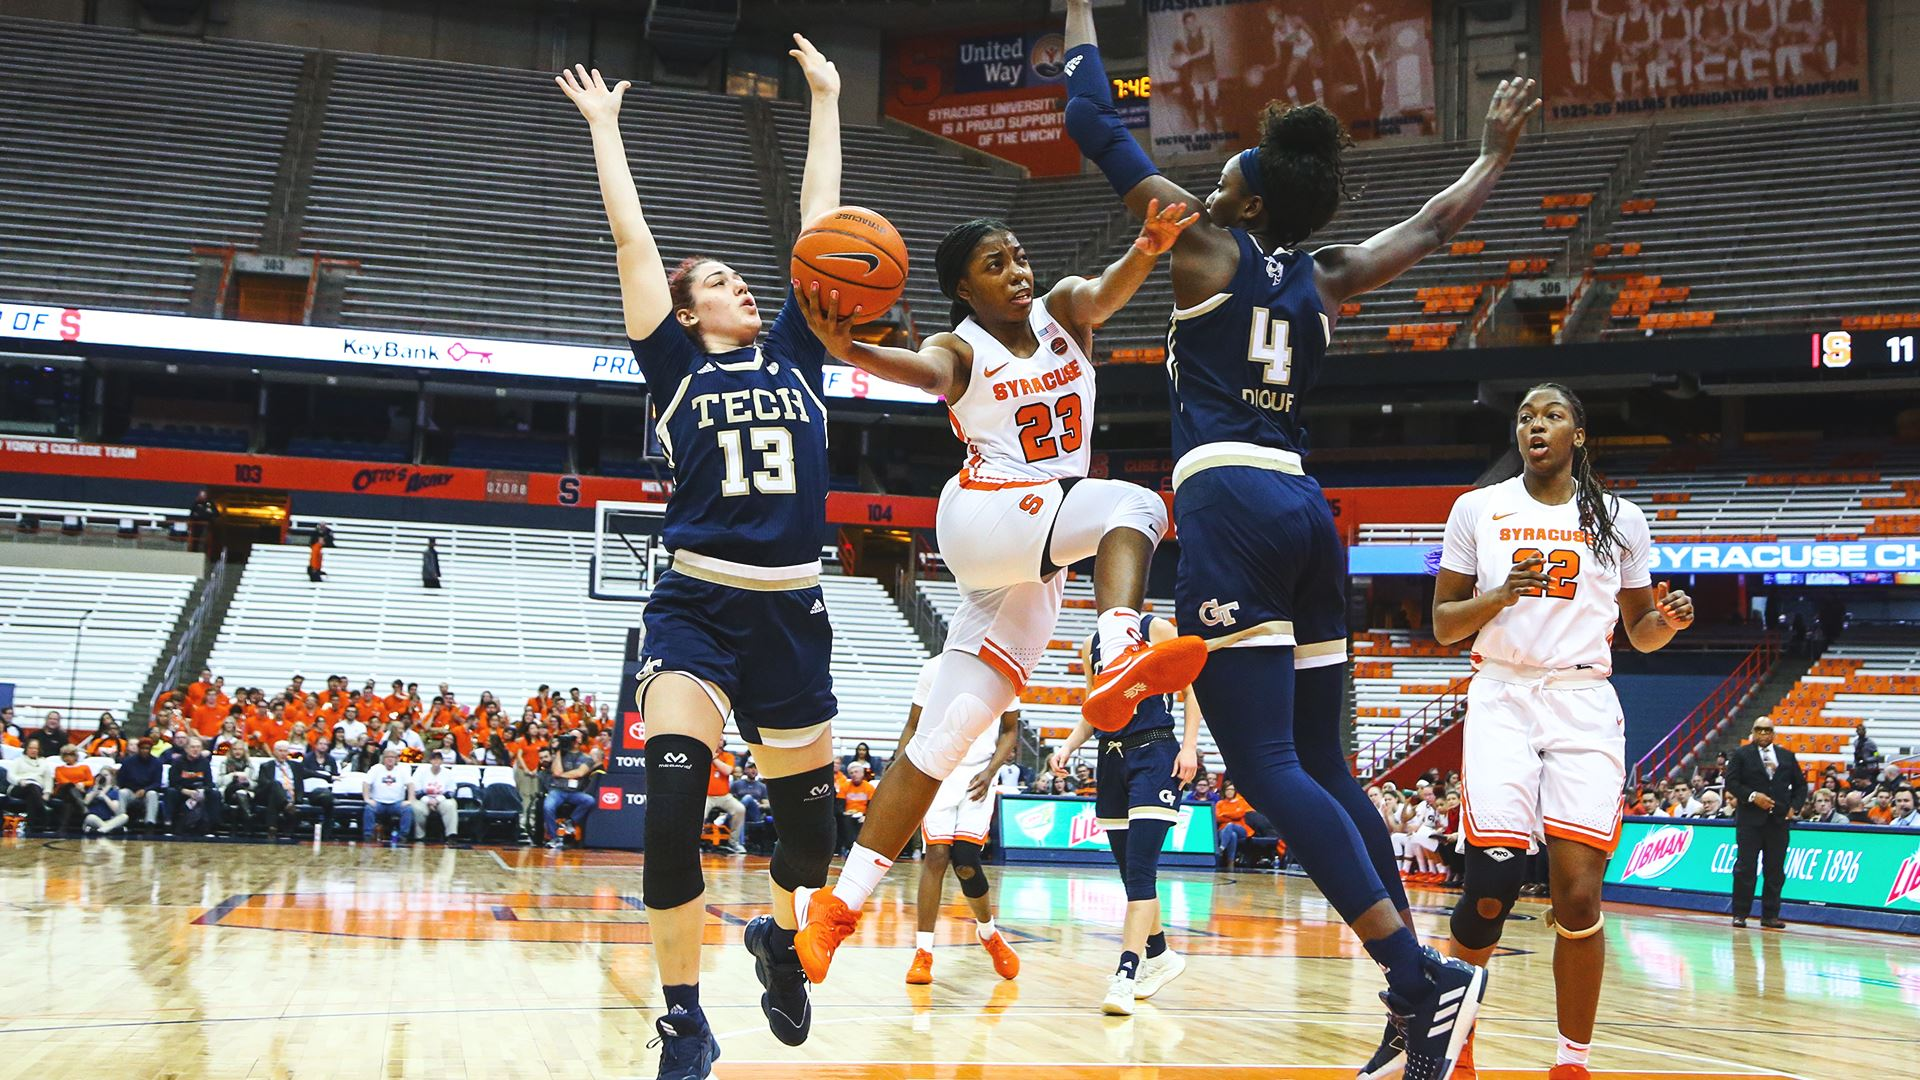 Syracuse gets blown out by Georgia Tech, 82-64